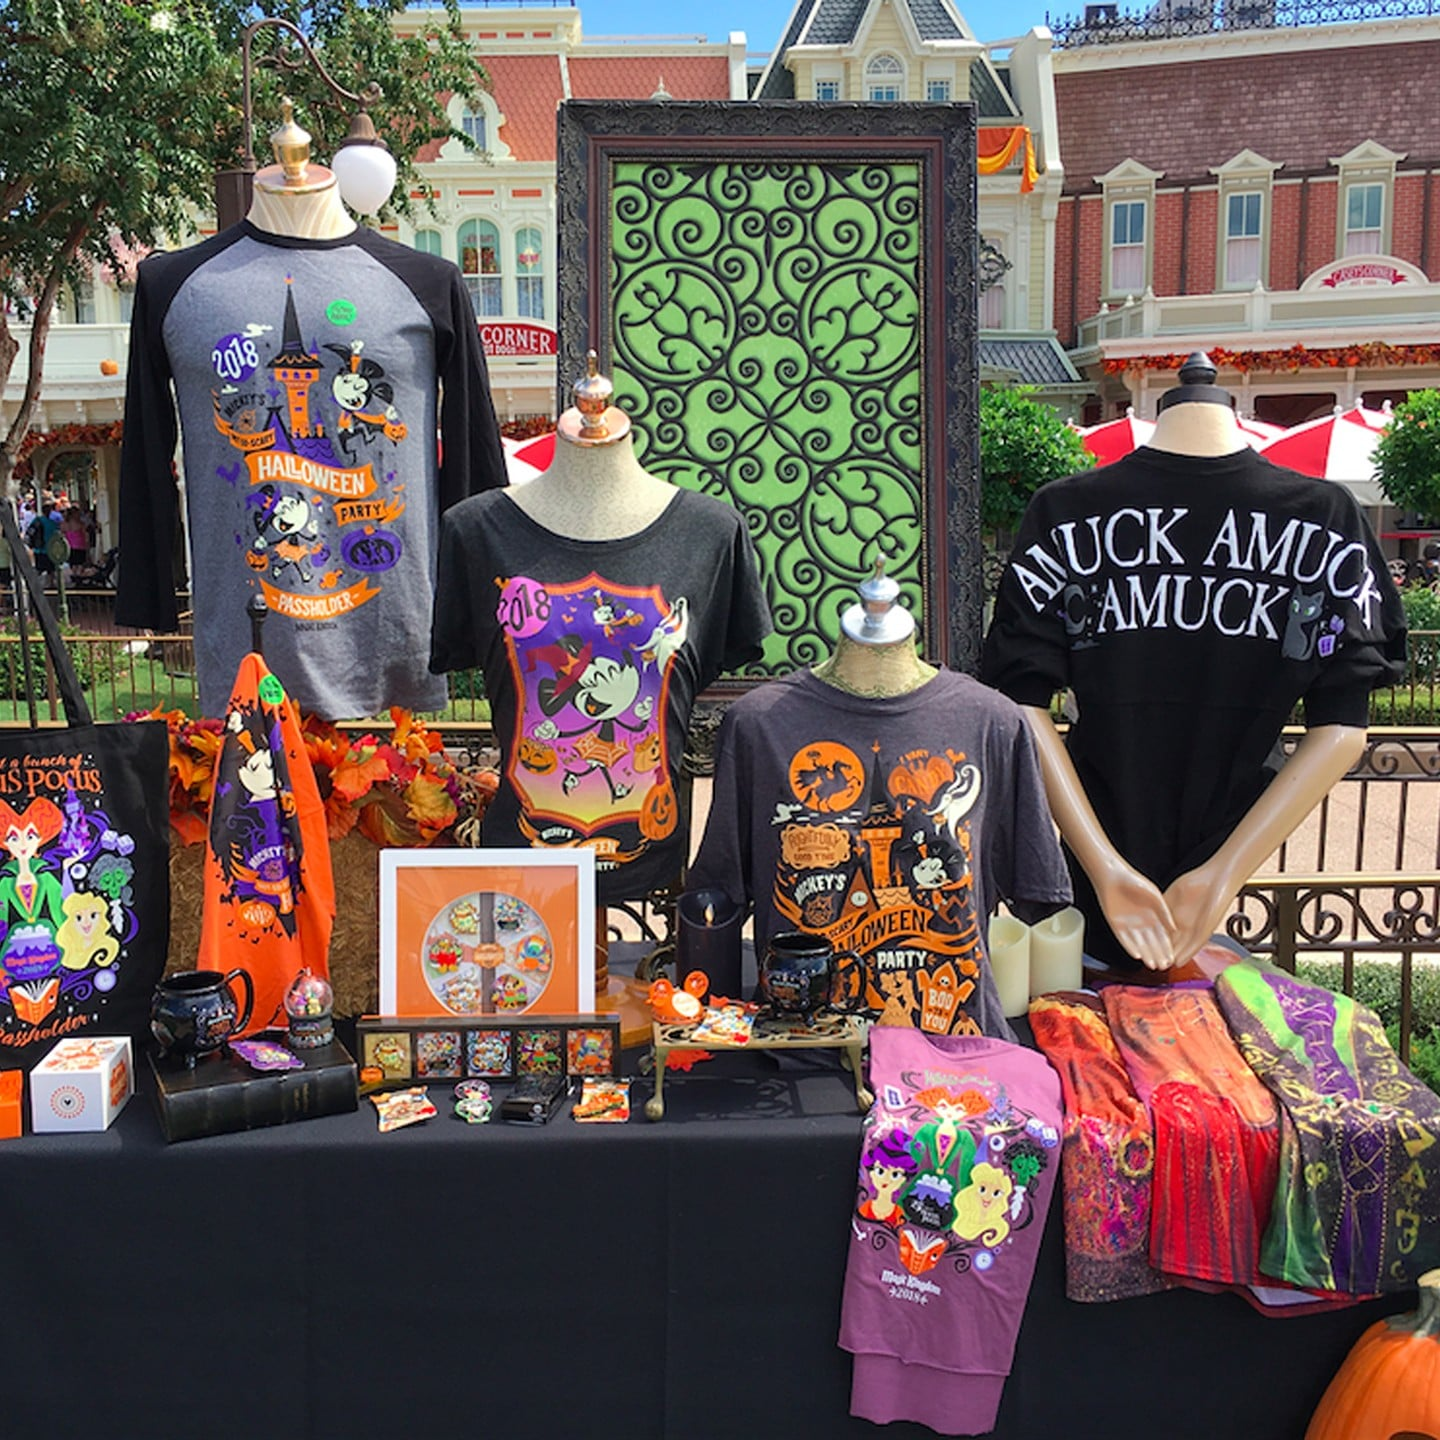 Disneyland Halloween 2019 Merchandise.Disney Hocus Pocus Merchandise Halloween 2018 Popsugar Entertainment